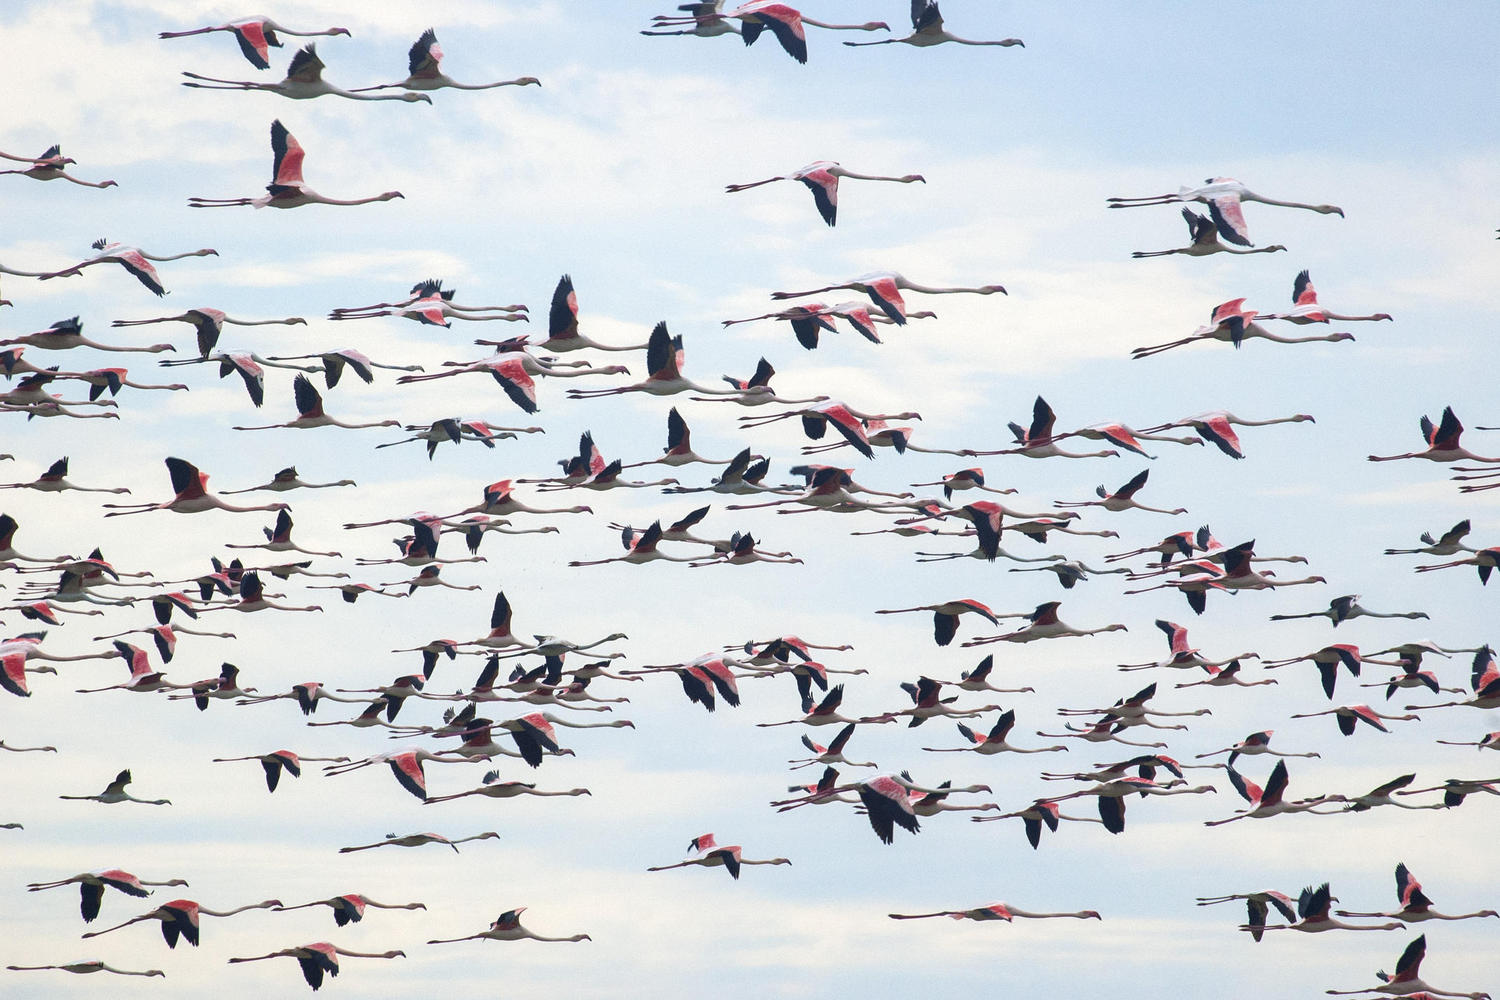 Flamingos flying over Doñana National Park